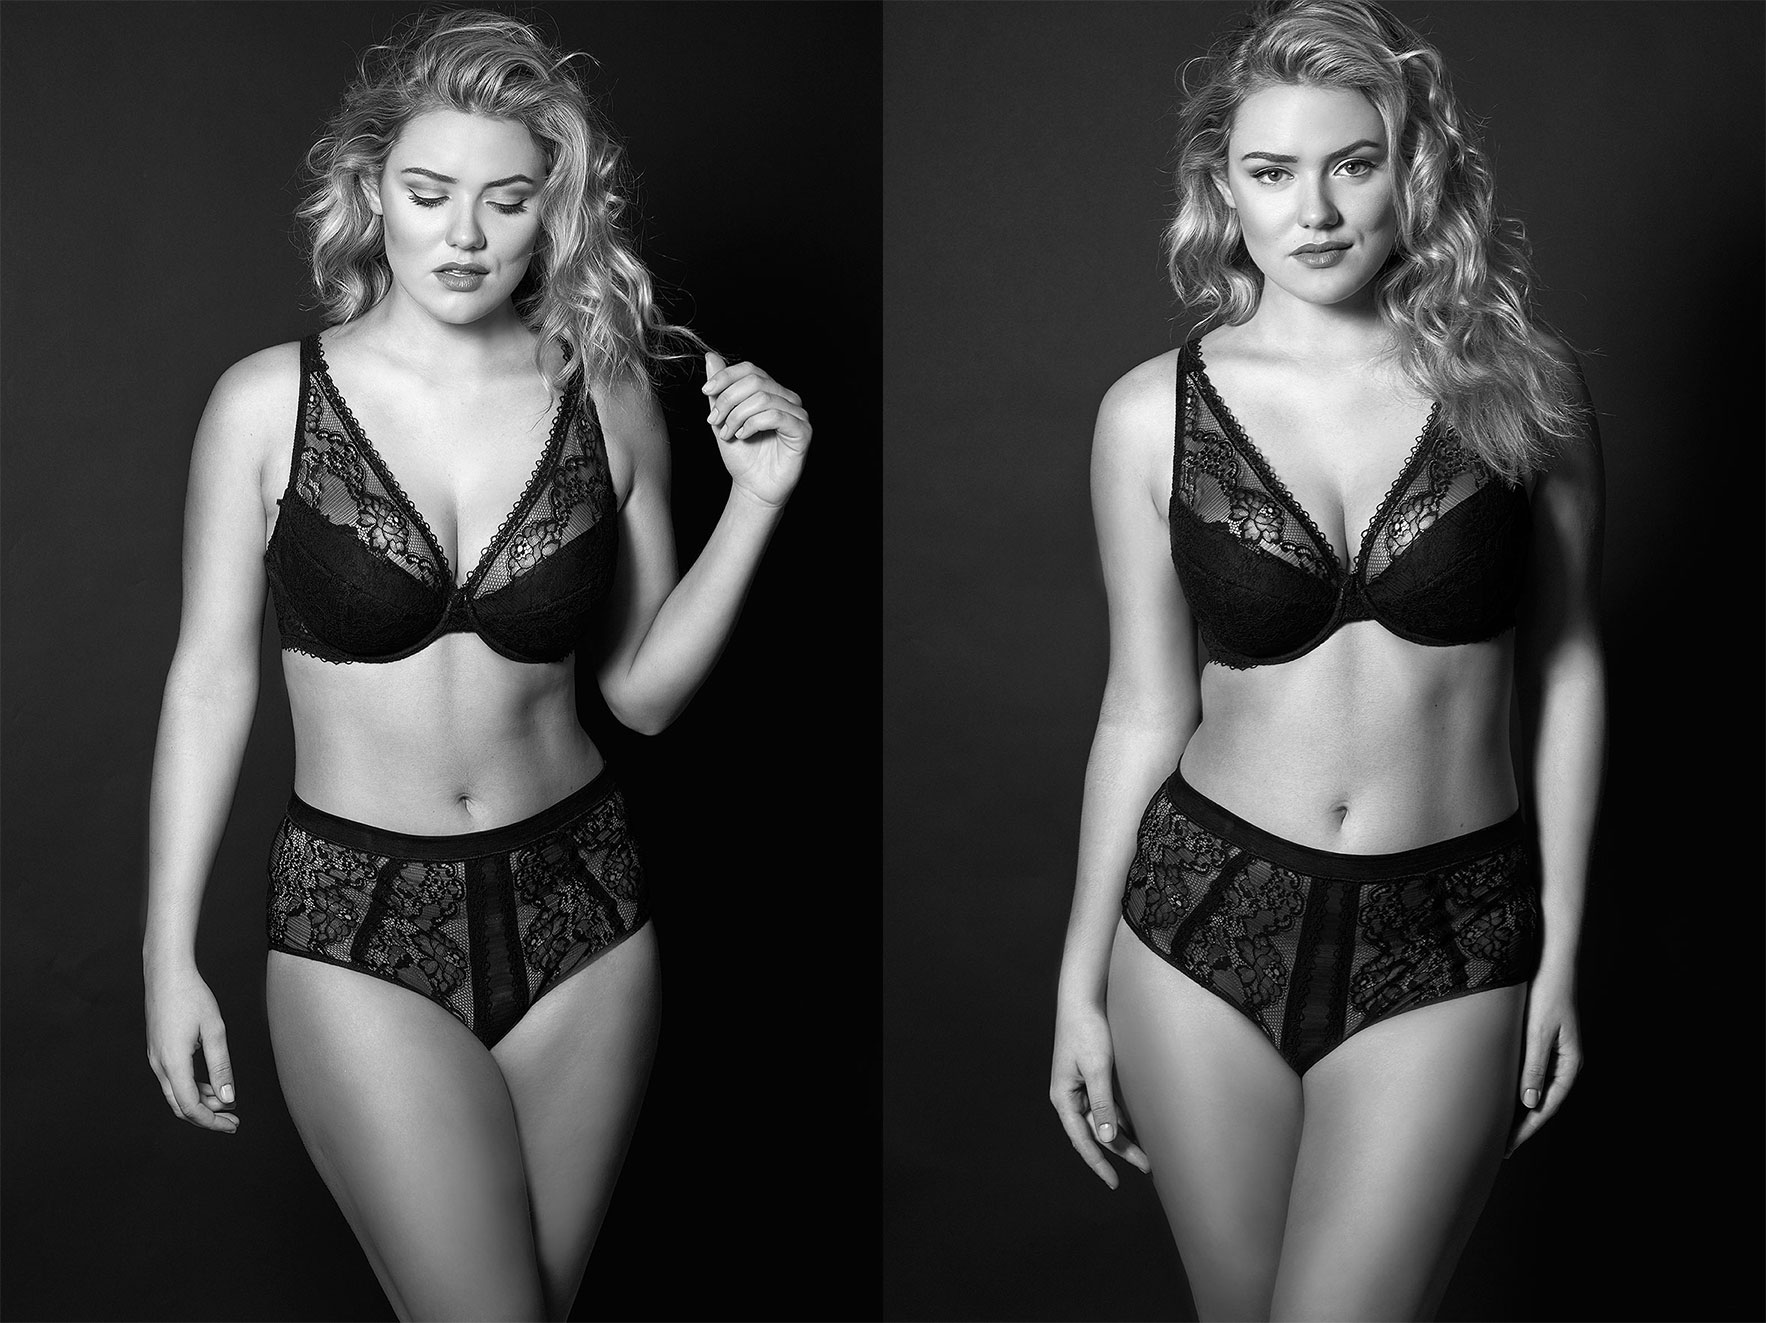 Lingerie-la-femme-larger-cup-lingerie-plus-size-model-kate-m-milk-models-adina-reay-12